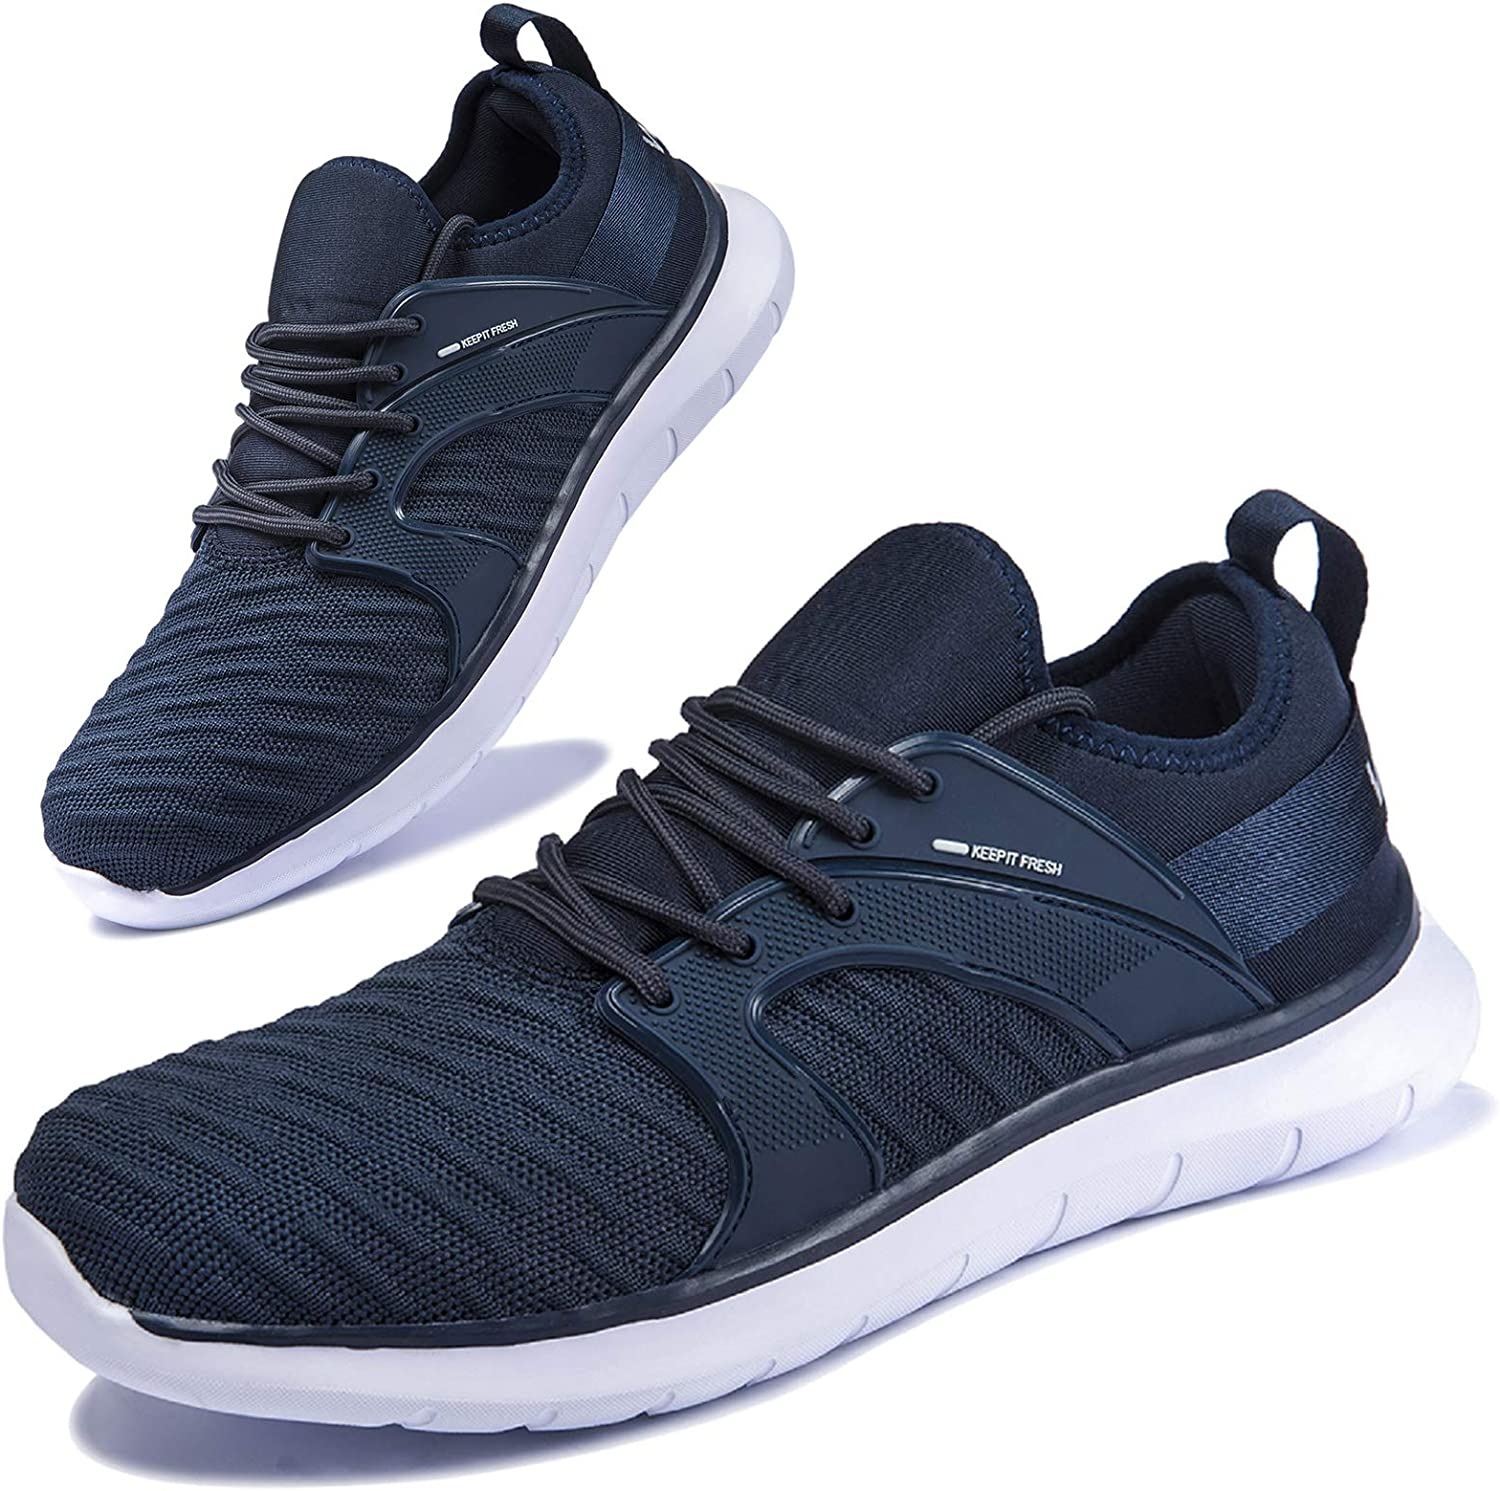 Anbenser New life Mens Walking Complete Free Shipping Shoes Women with Arch Support Athl Slip on